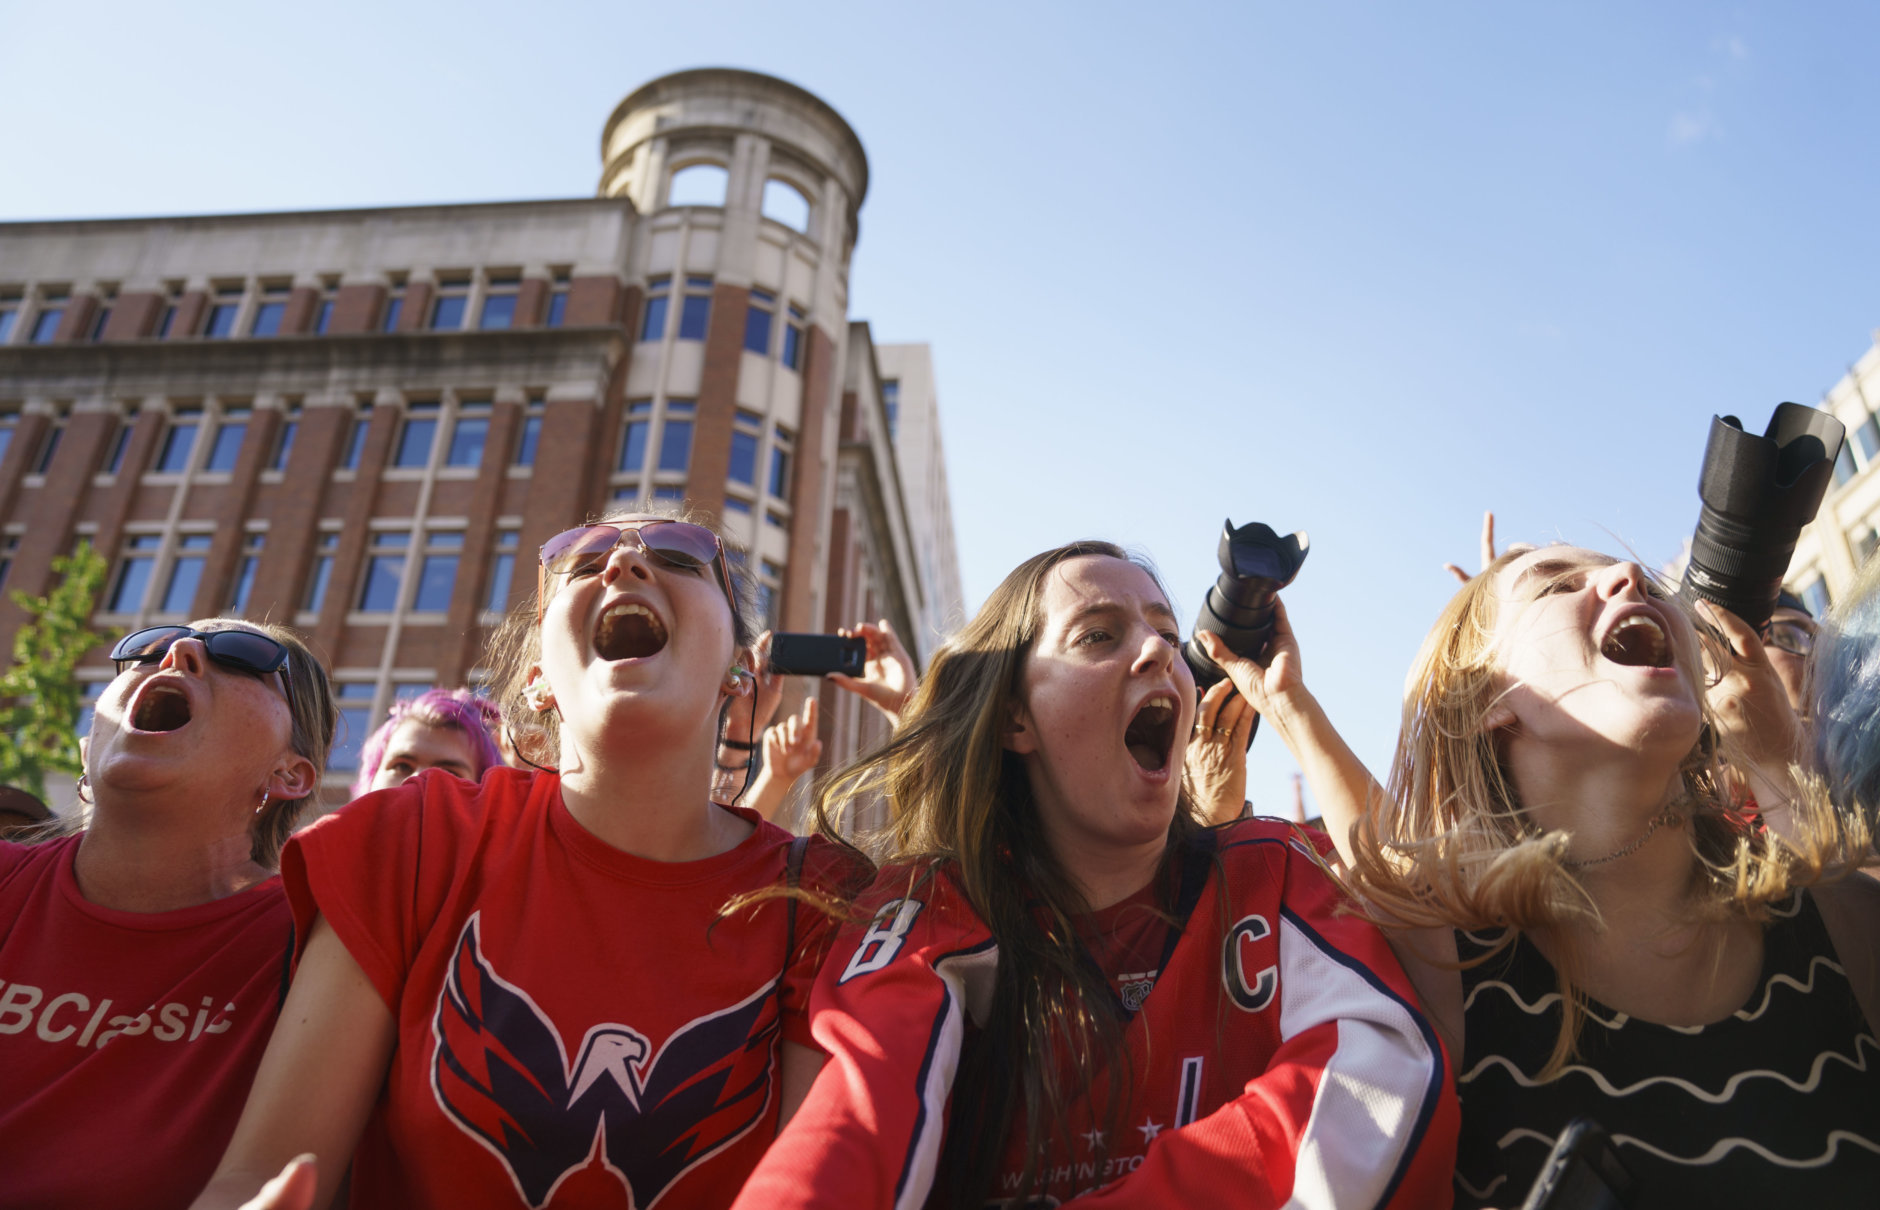 Fans cheer as Fall Out Boy performers before Game 4 of the NHL hockey Stanley Cup Final between the Washington Capitals and the Vegas Golden Knights, Monday, June 4, 2018, in Washington. (AP Photo/Carolyn Kaster)